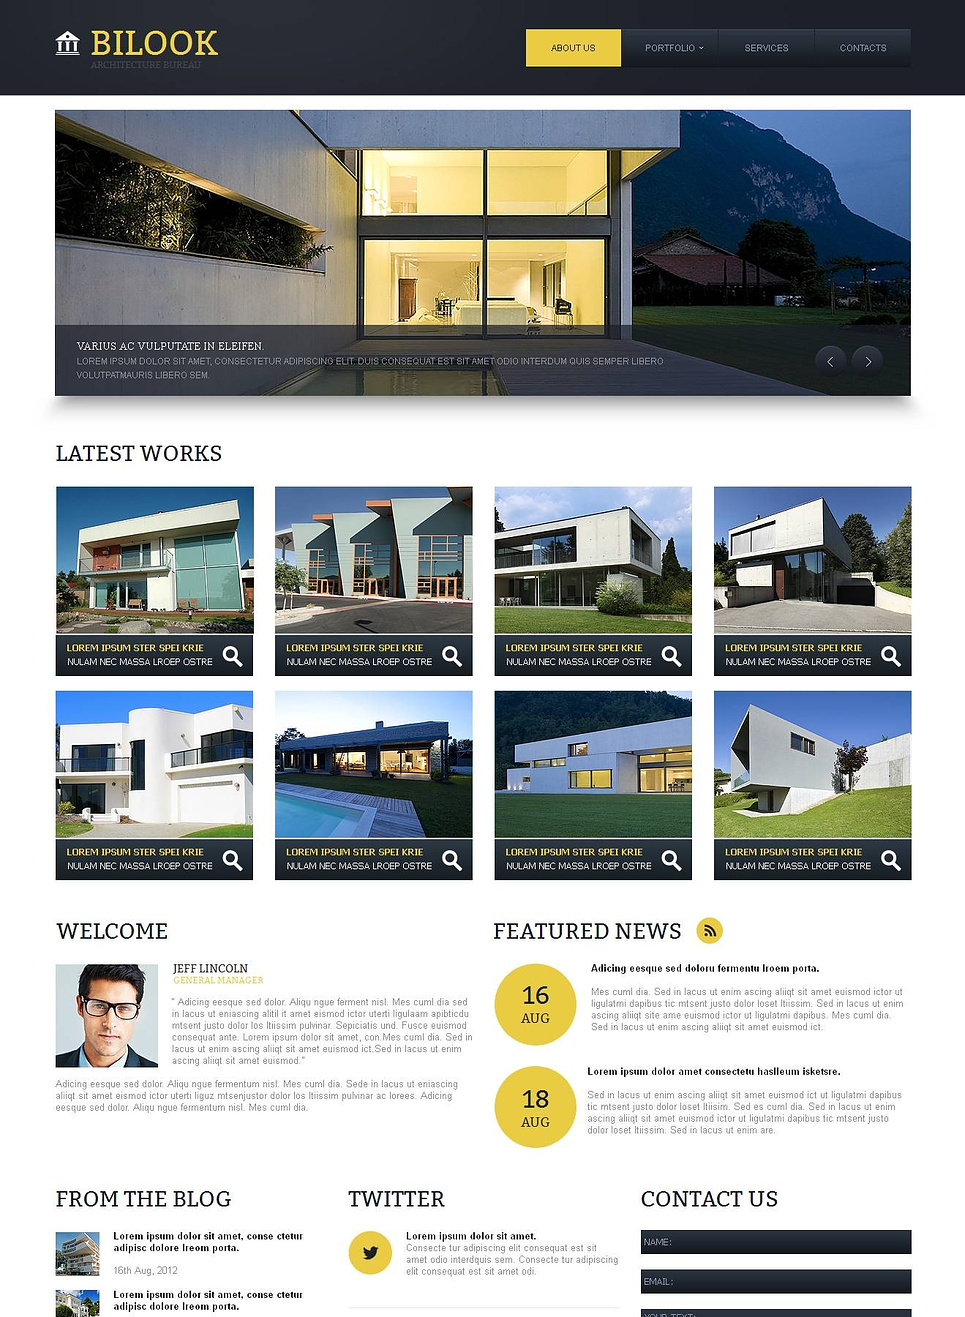 Architecture Bureau Website Template with Photo Gallery - image